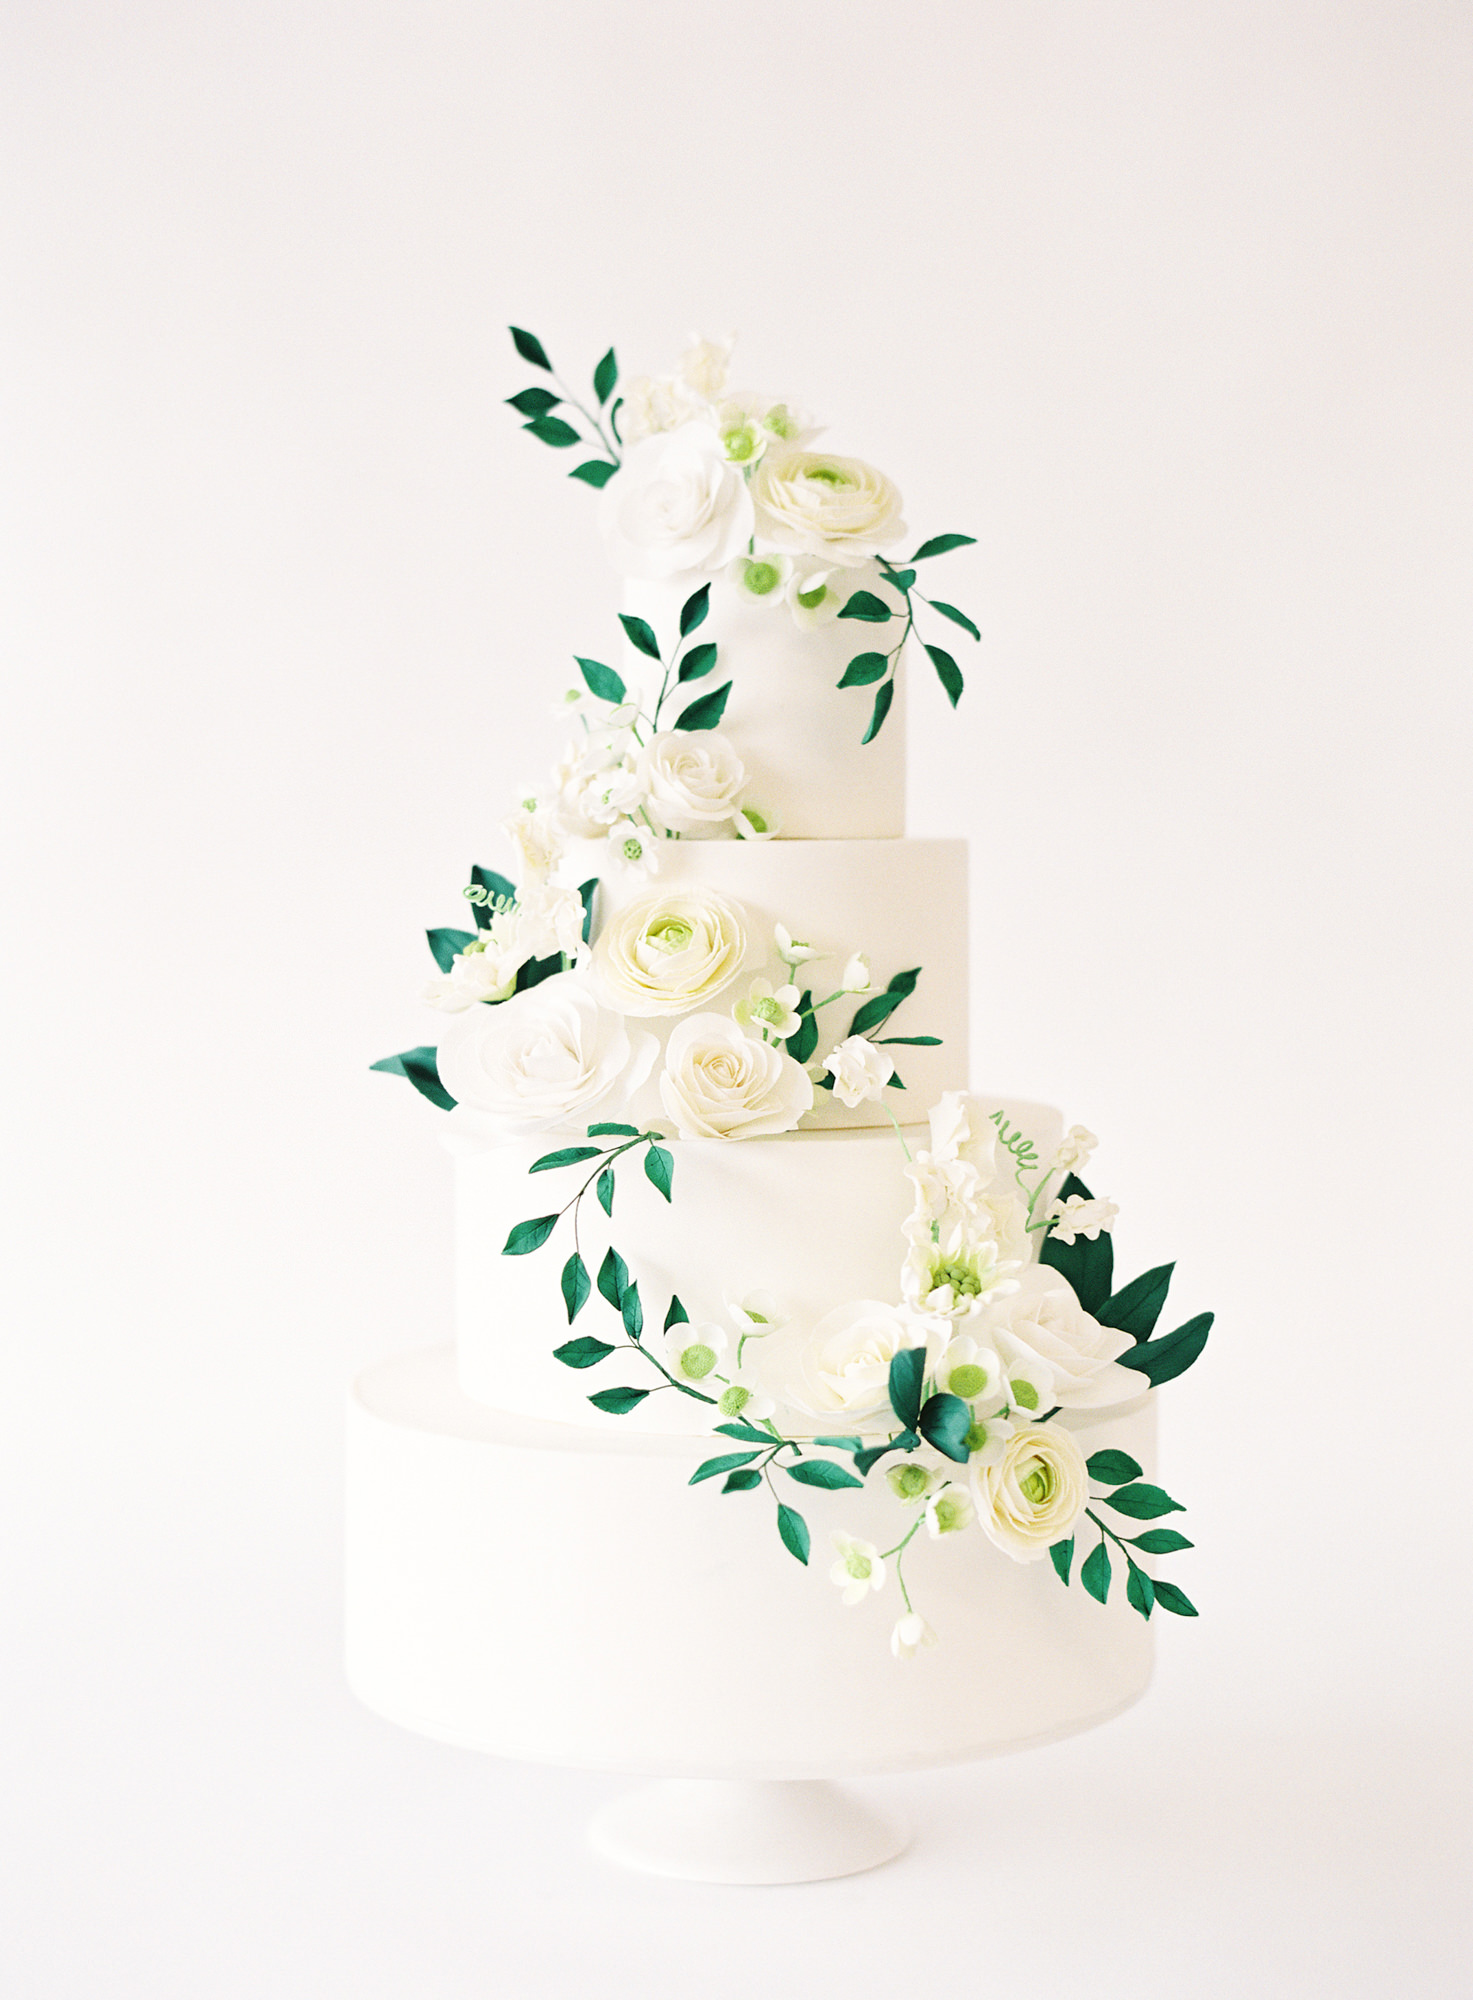 white fondant cake with ivy ran Jen Huang Los Angeles wedding photographer